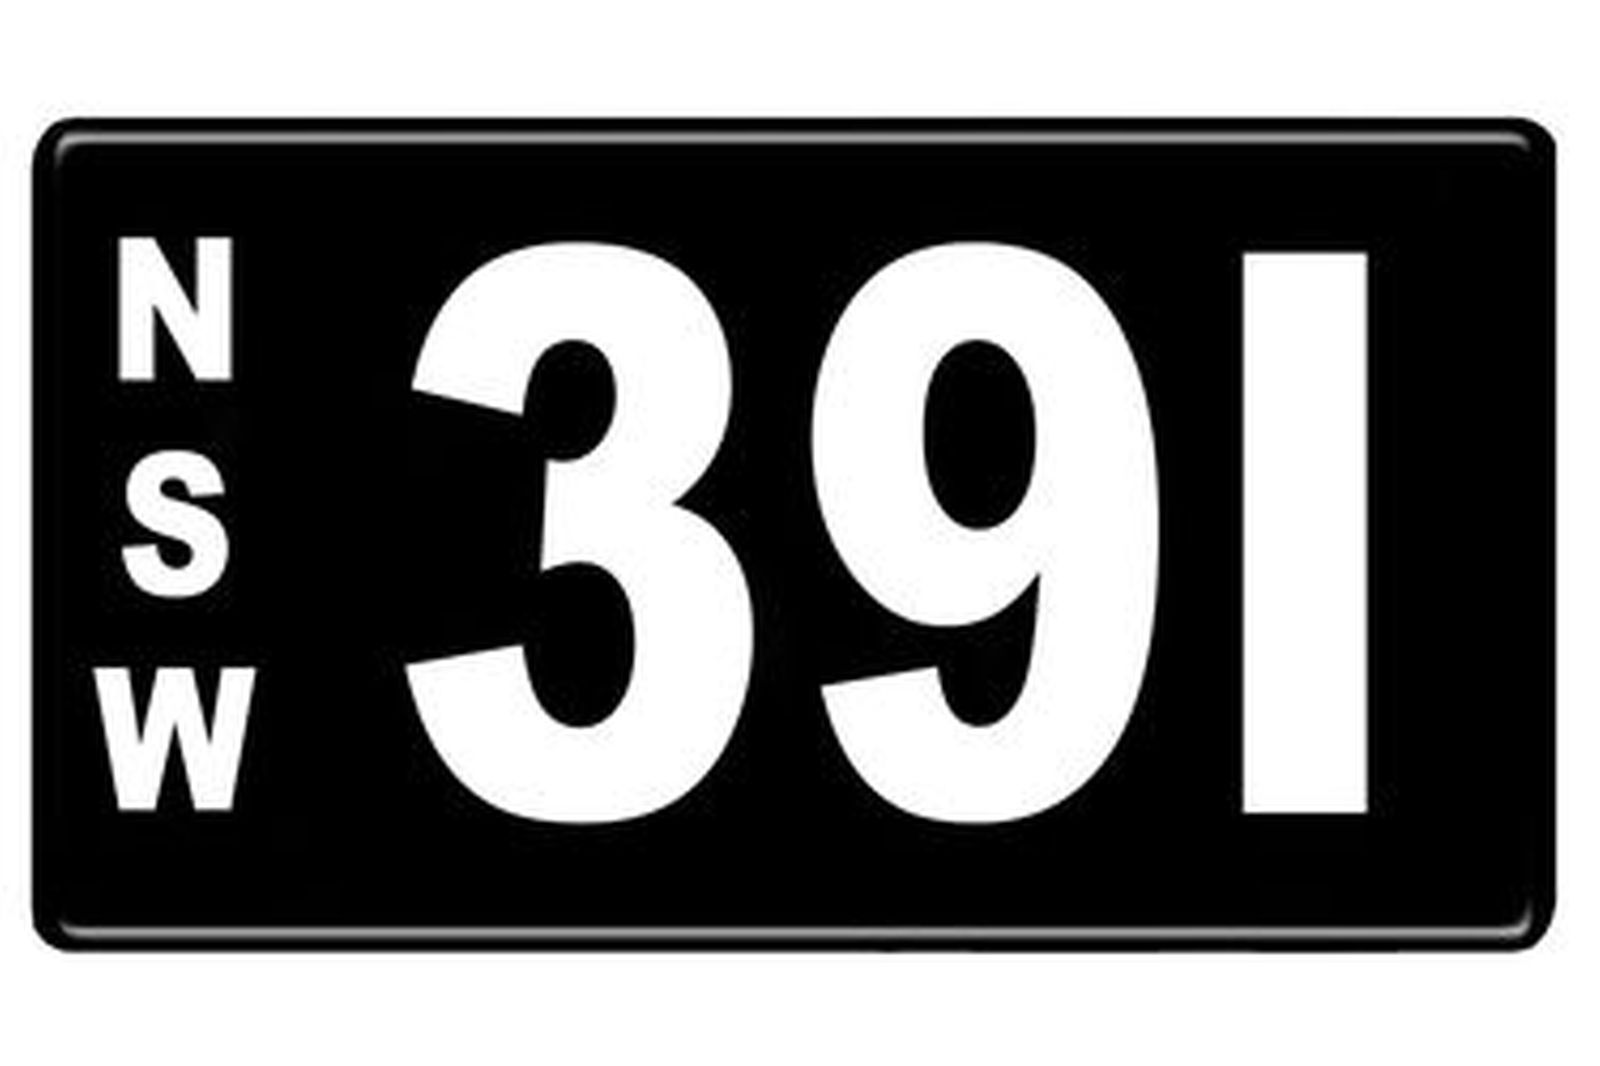 Number Plates - NSW Numerical Number Plates '391'